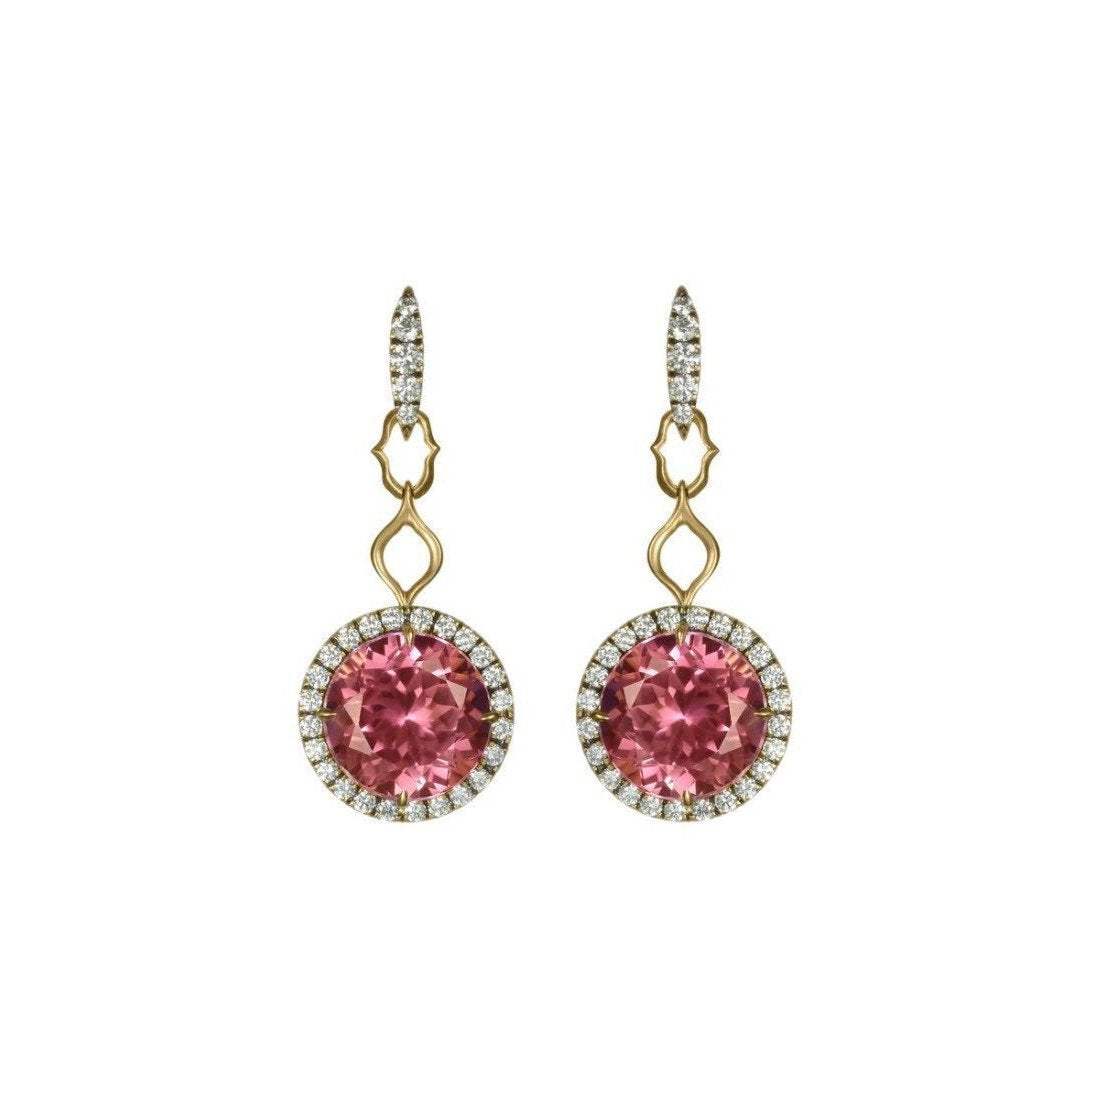 18kt Yellow Gold and Pink Tourmaline Statement Drop Earrings